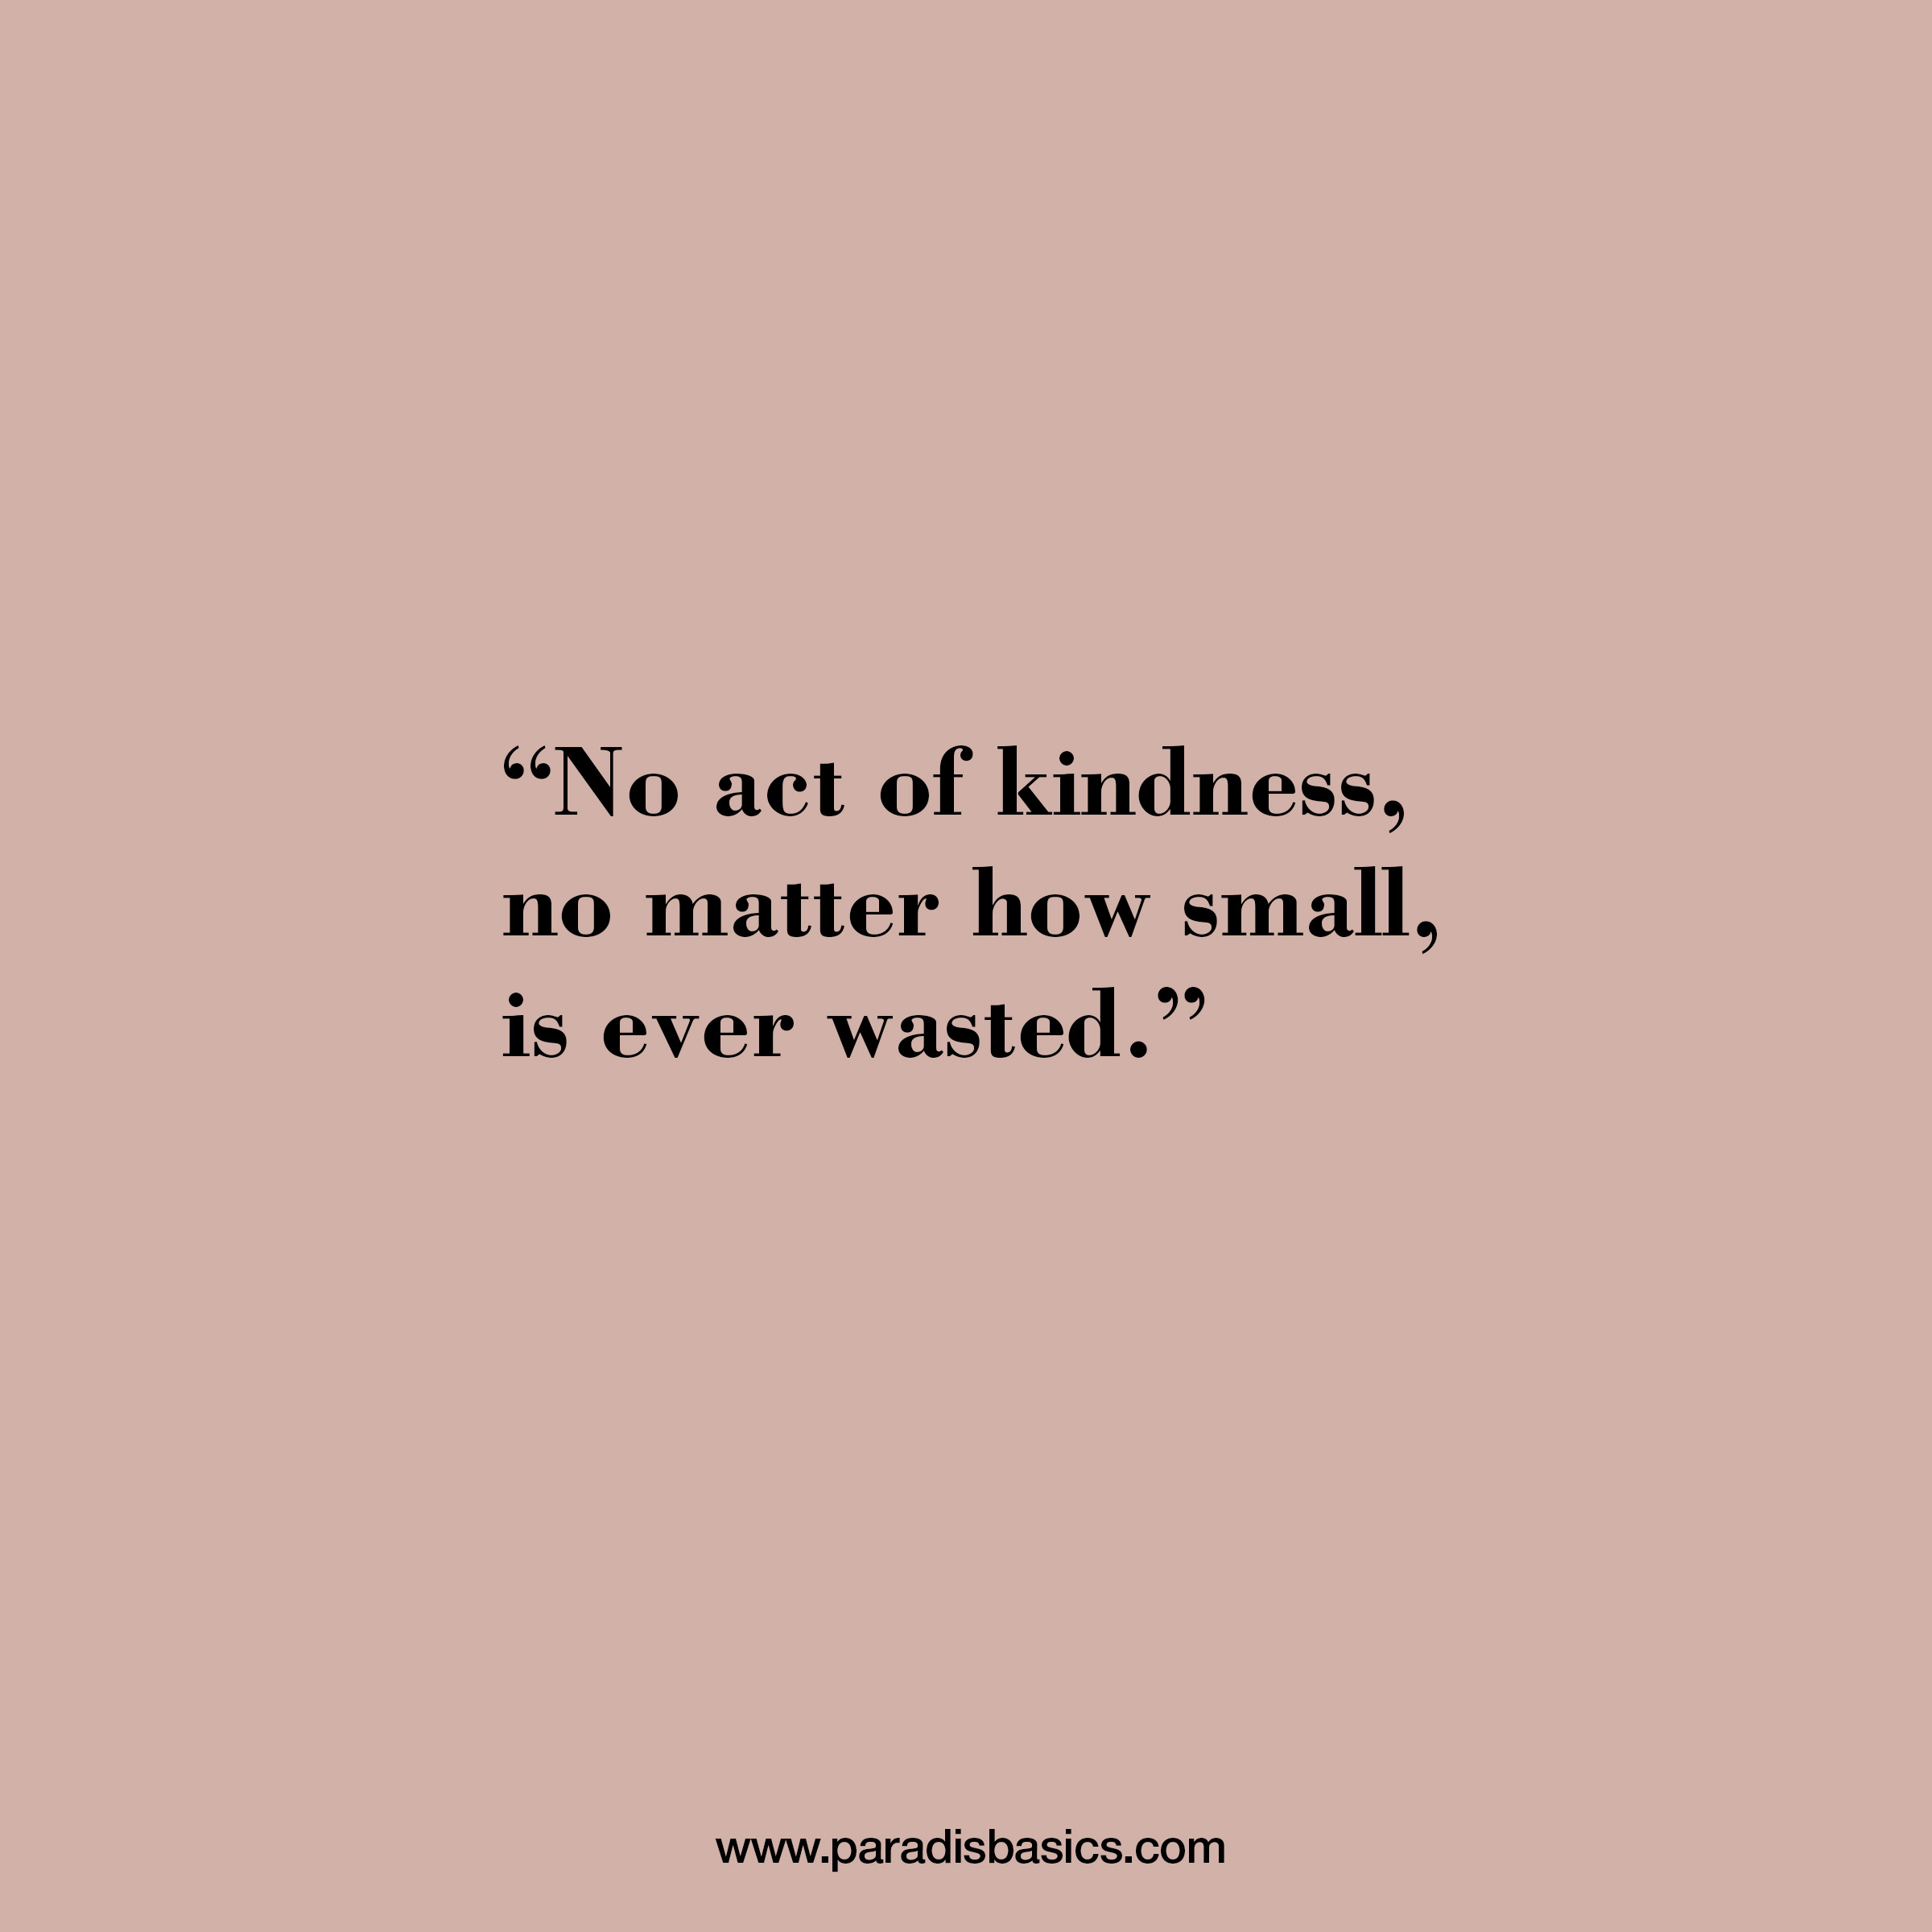 No act of kindness no matter how small, is ever wasted.